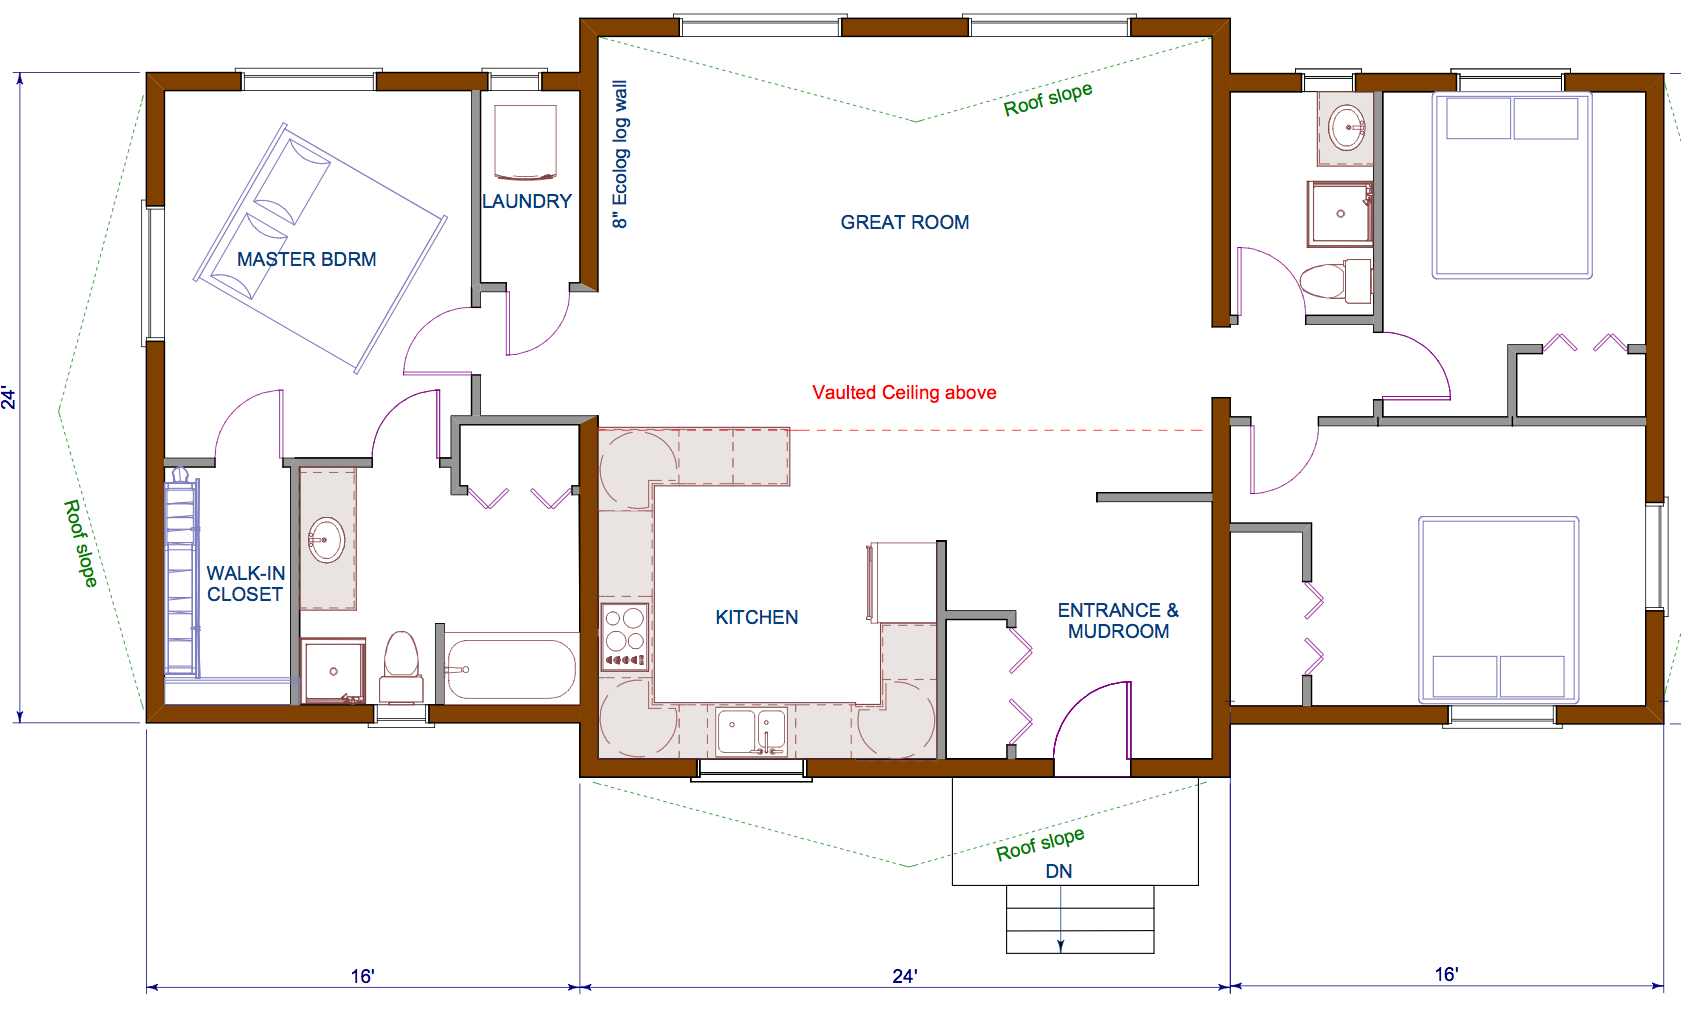 floor plan 1440 sqft wing shaped single level log home rancherbungalow style - House Plans With Mudrooms